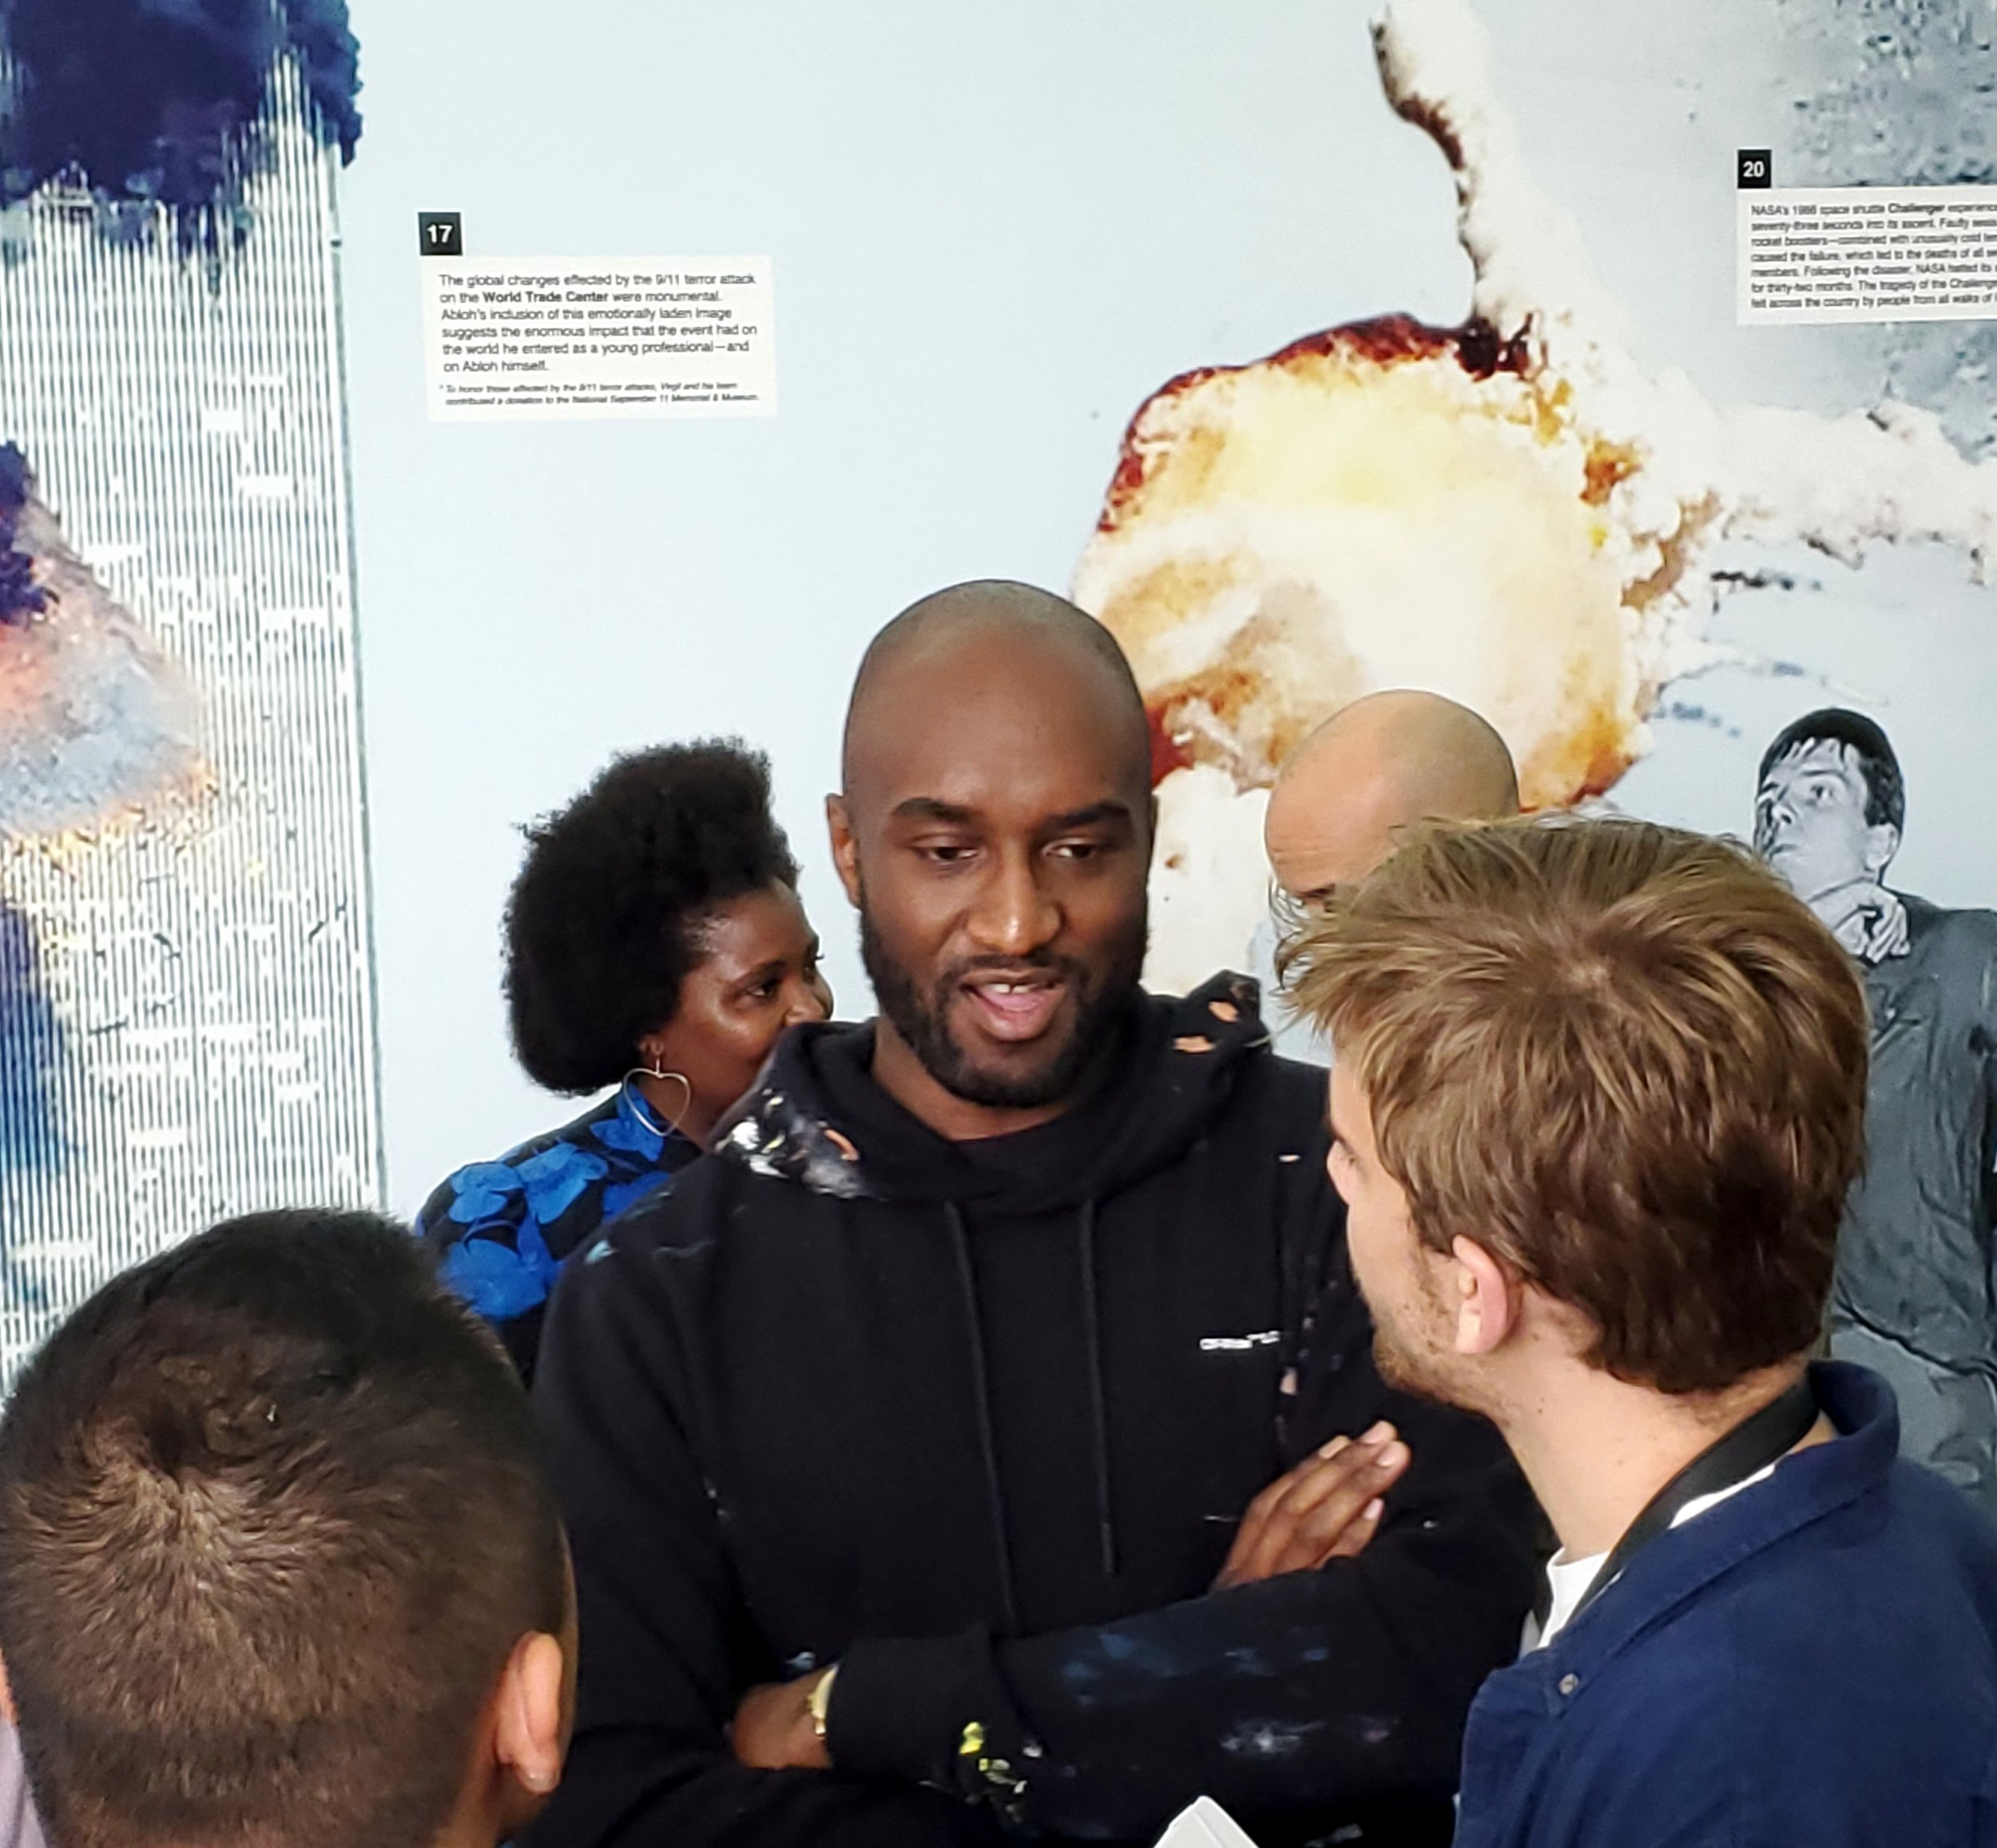 Virgil Abloh surrounded by fans